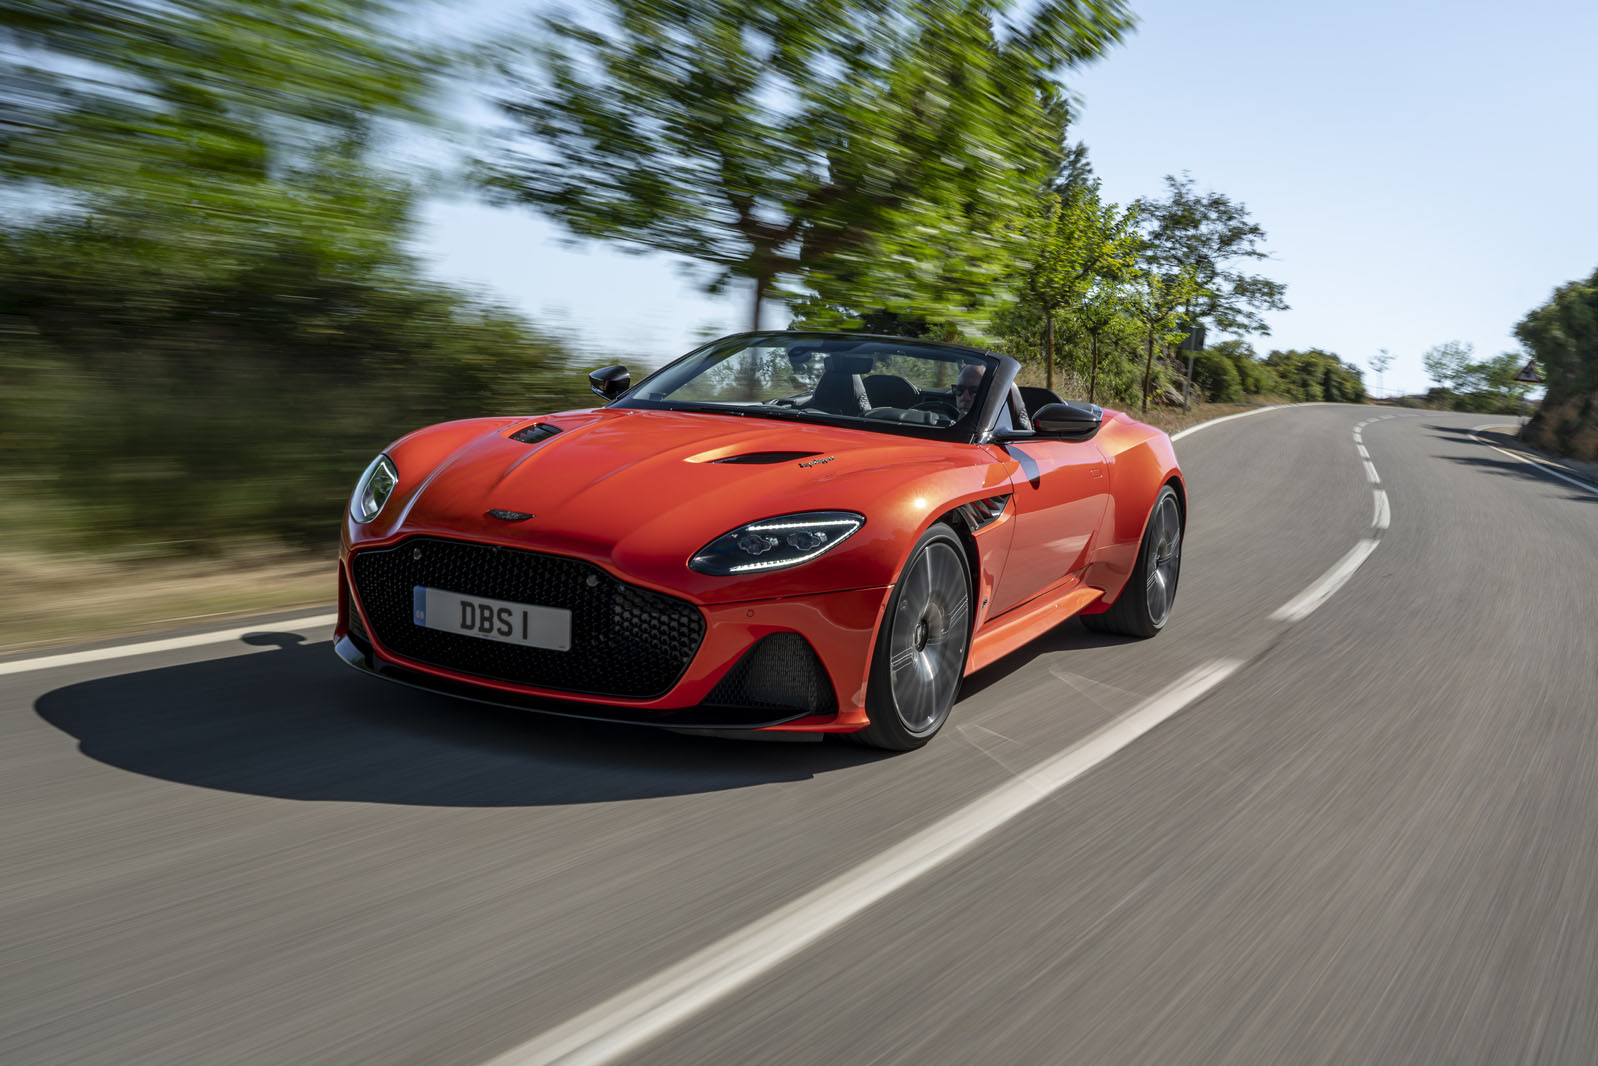 Aston Martin DBS Superleggera Volante 2019 review